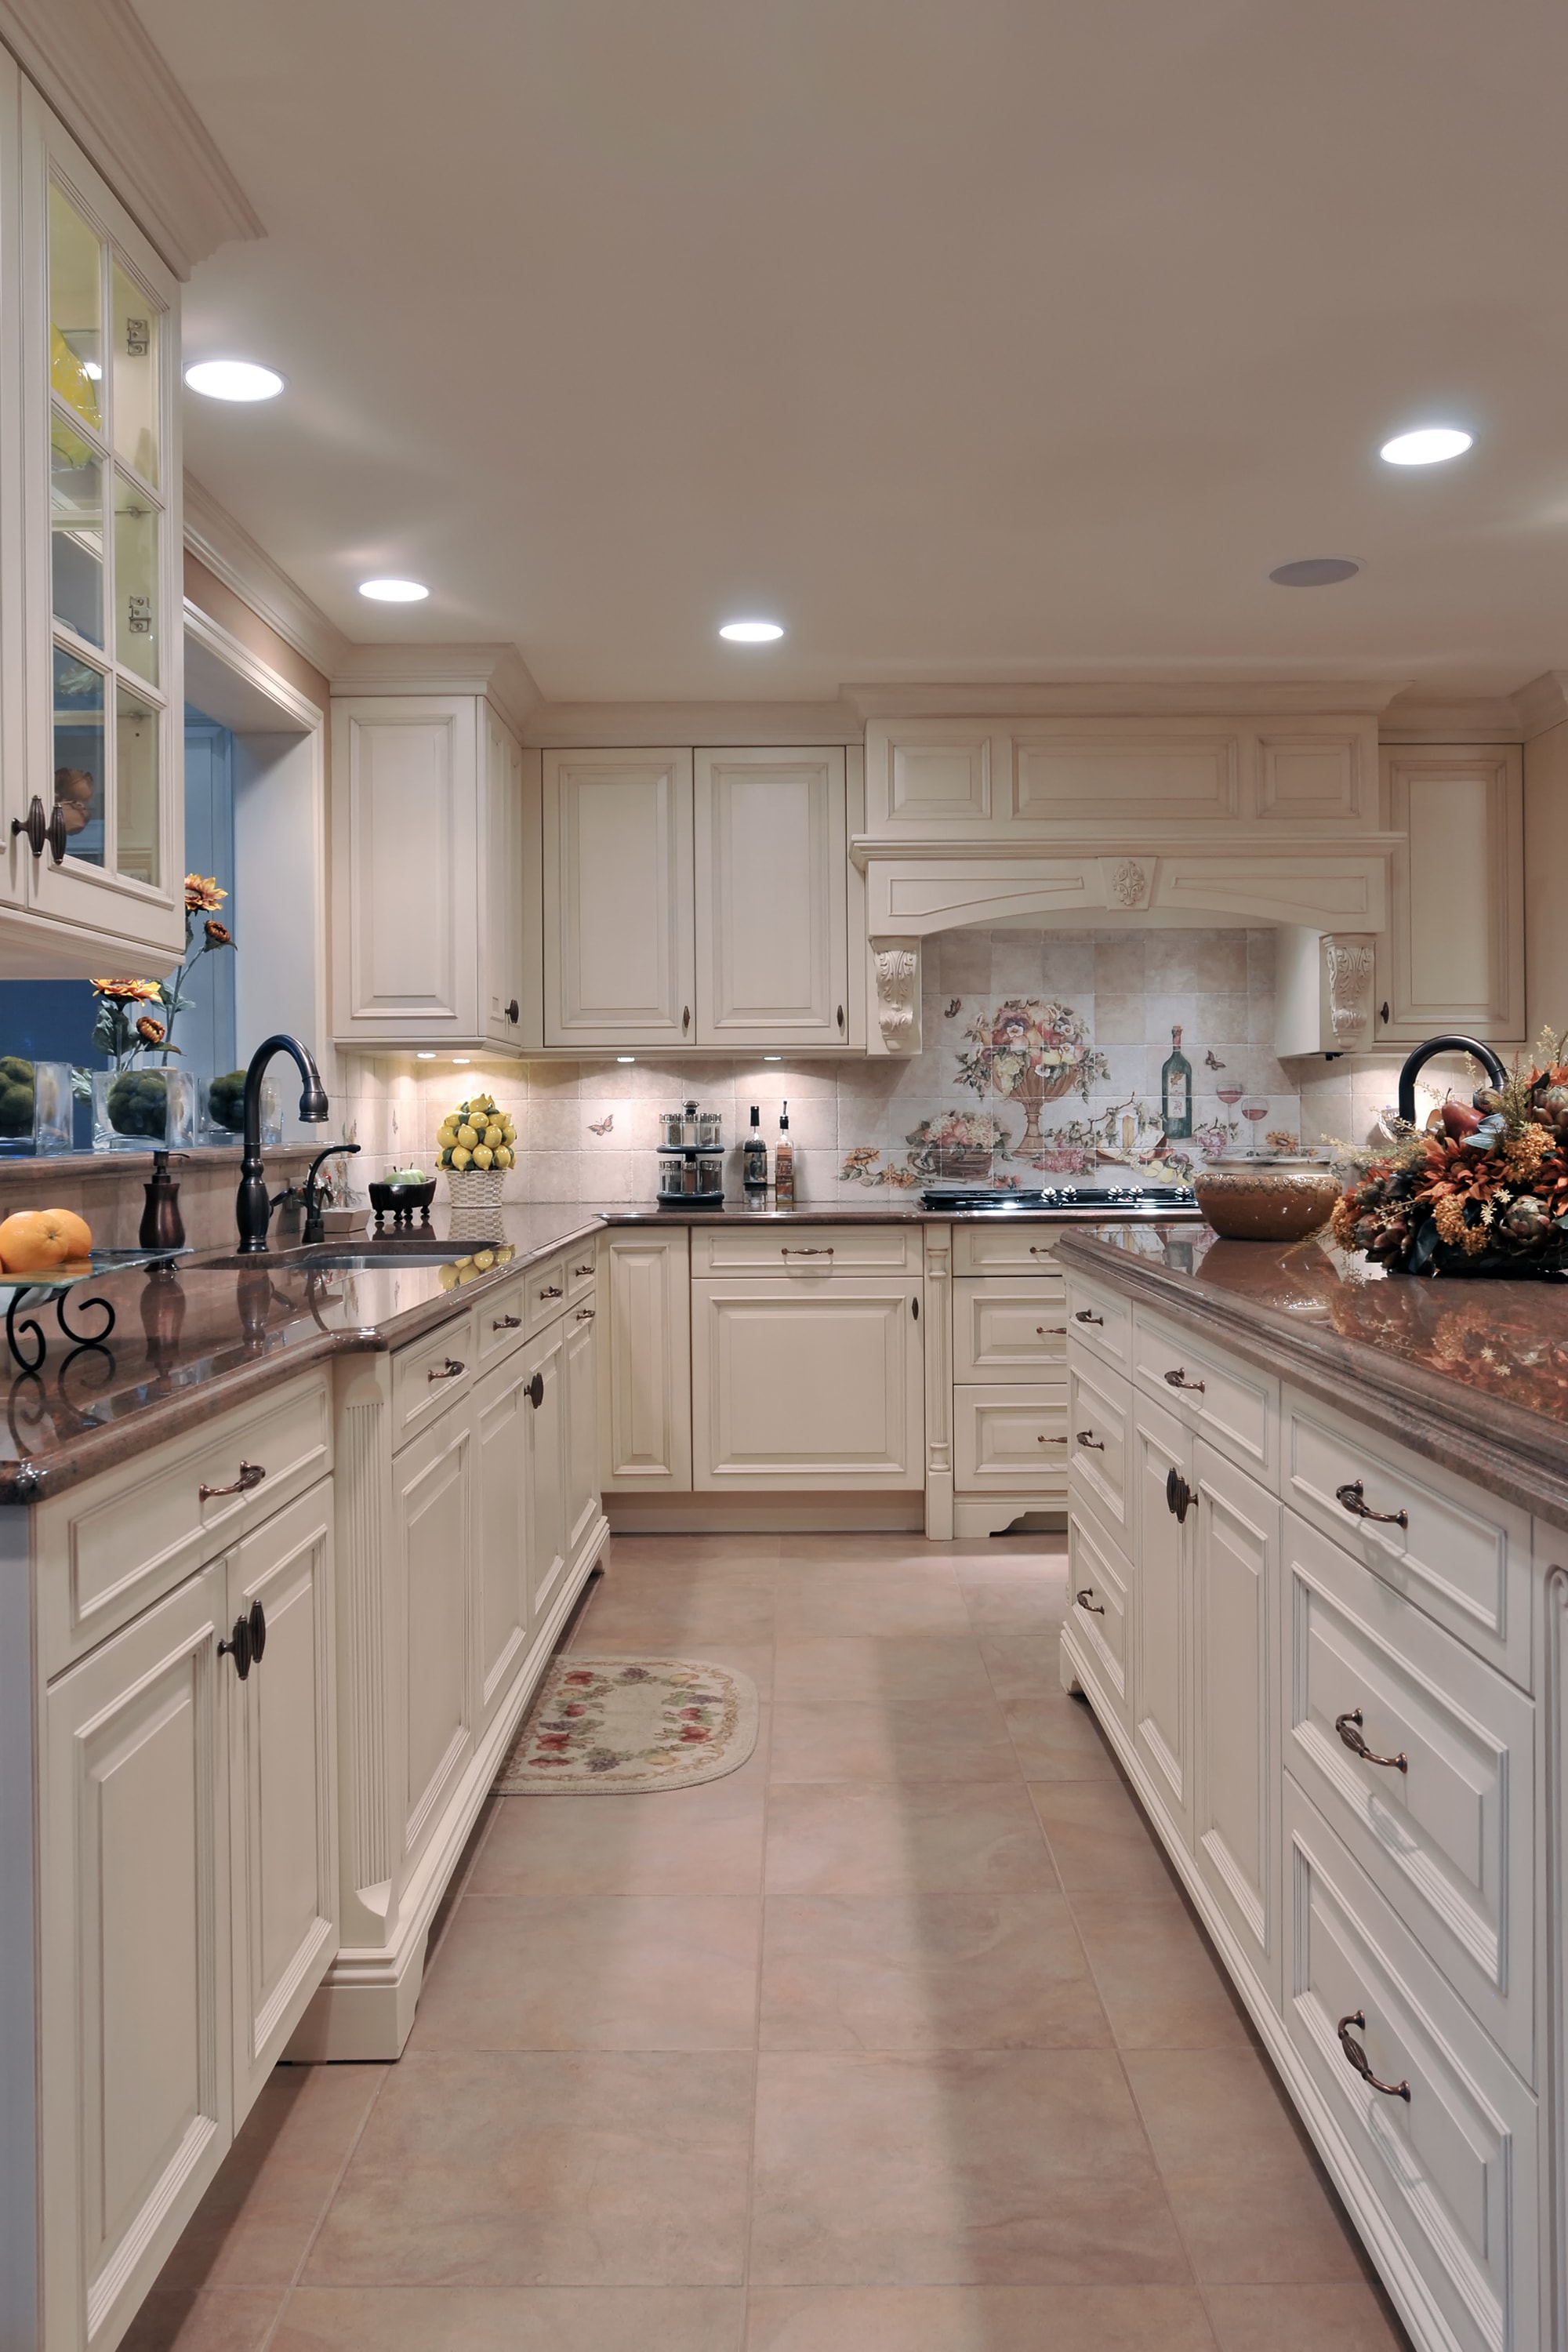 Traditional style kitchen with white cabinets and drawers